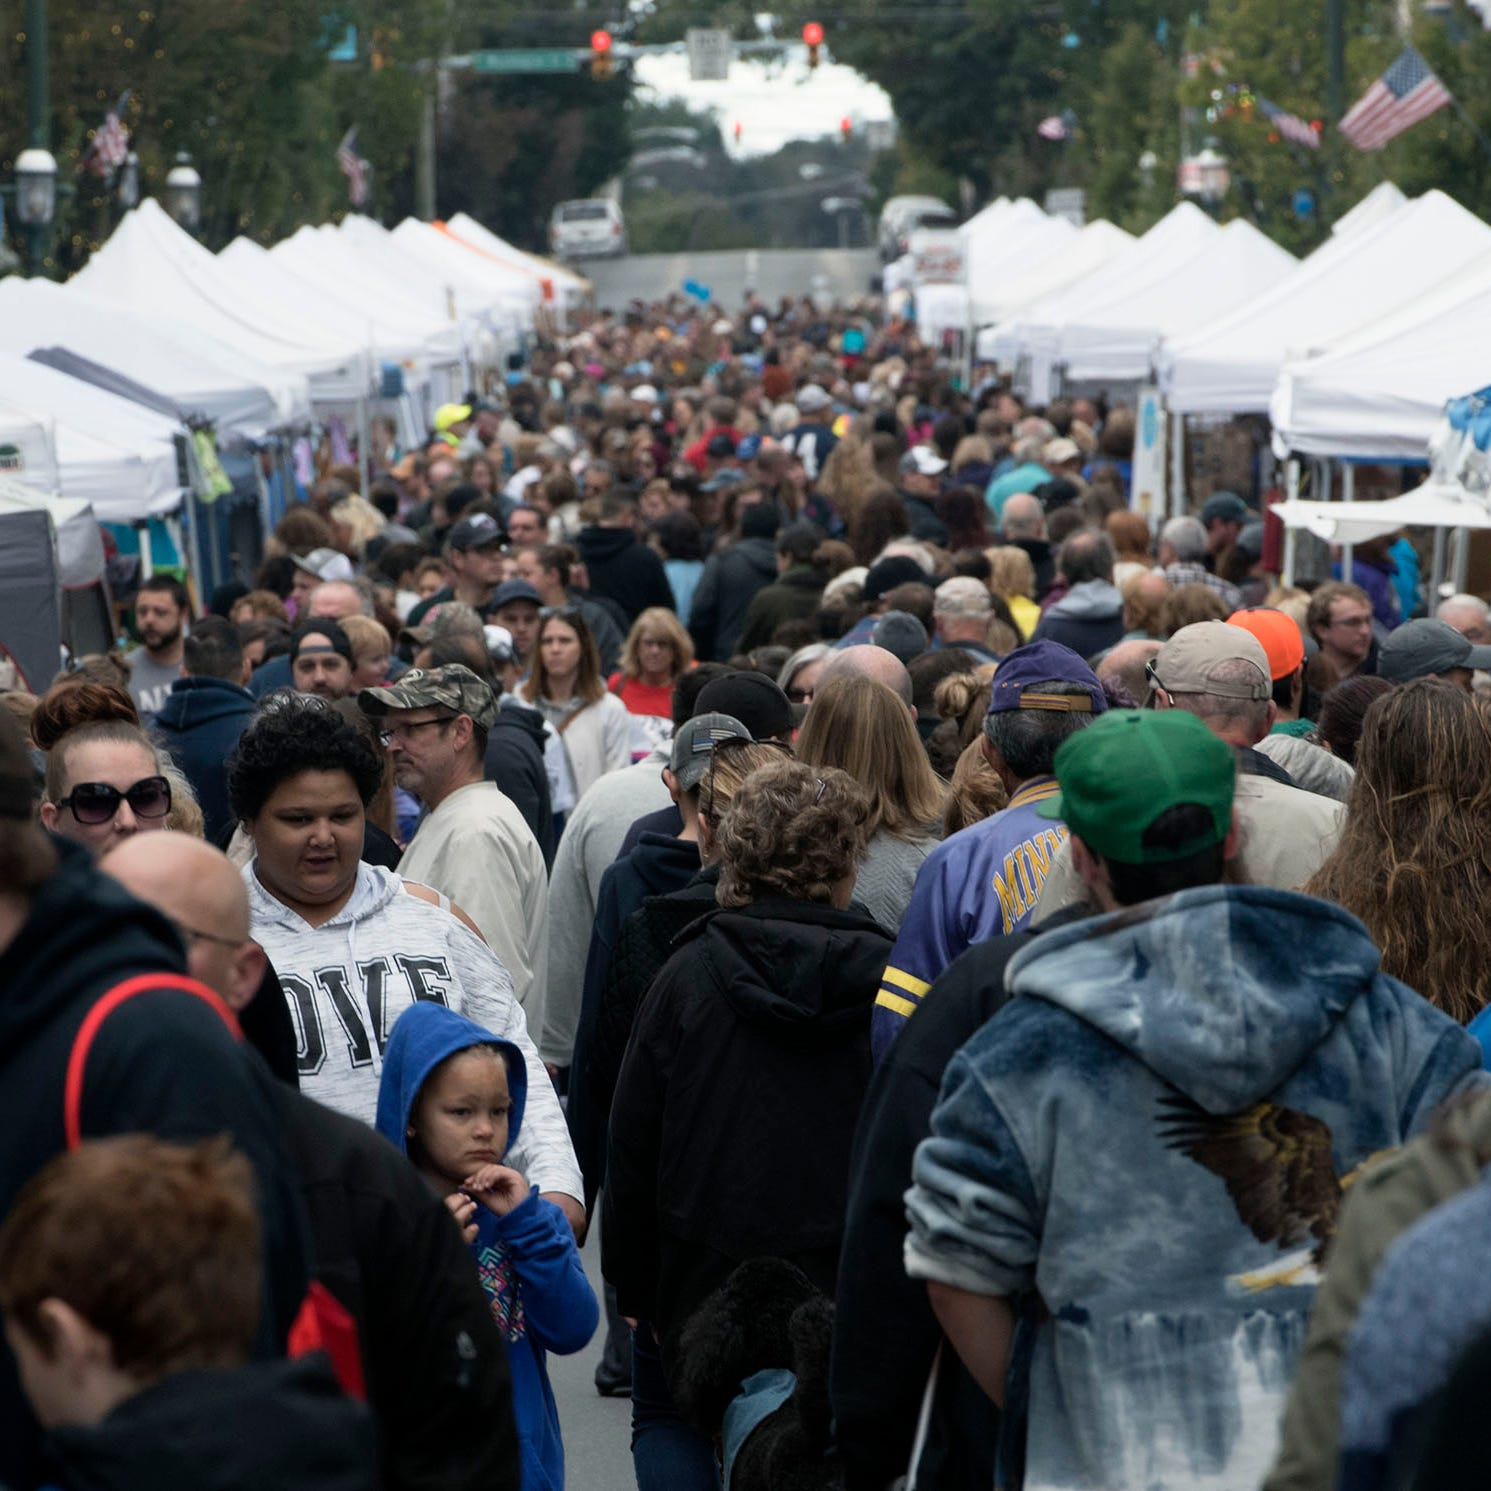 Crowds walk along South Main Street. Applefest started Saturday morning October 20, 2018 in downtown Chambersburg.